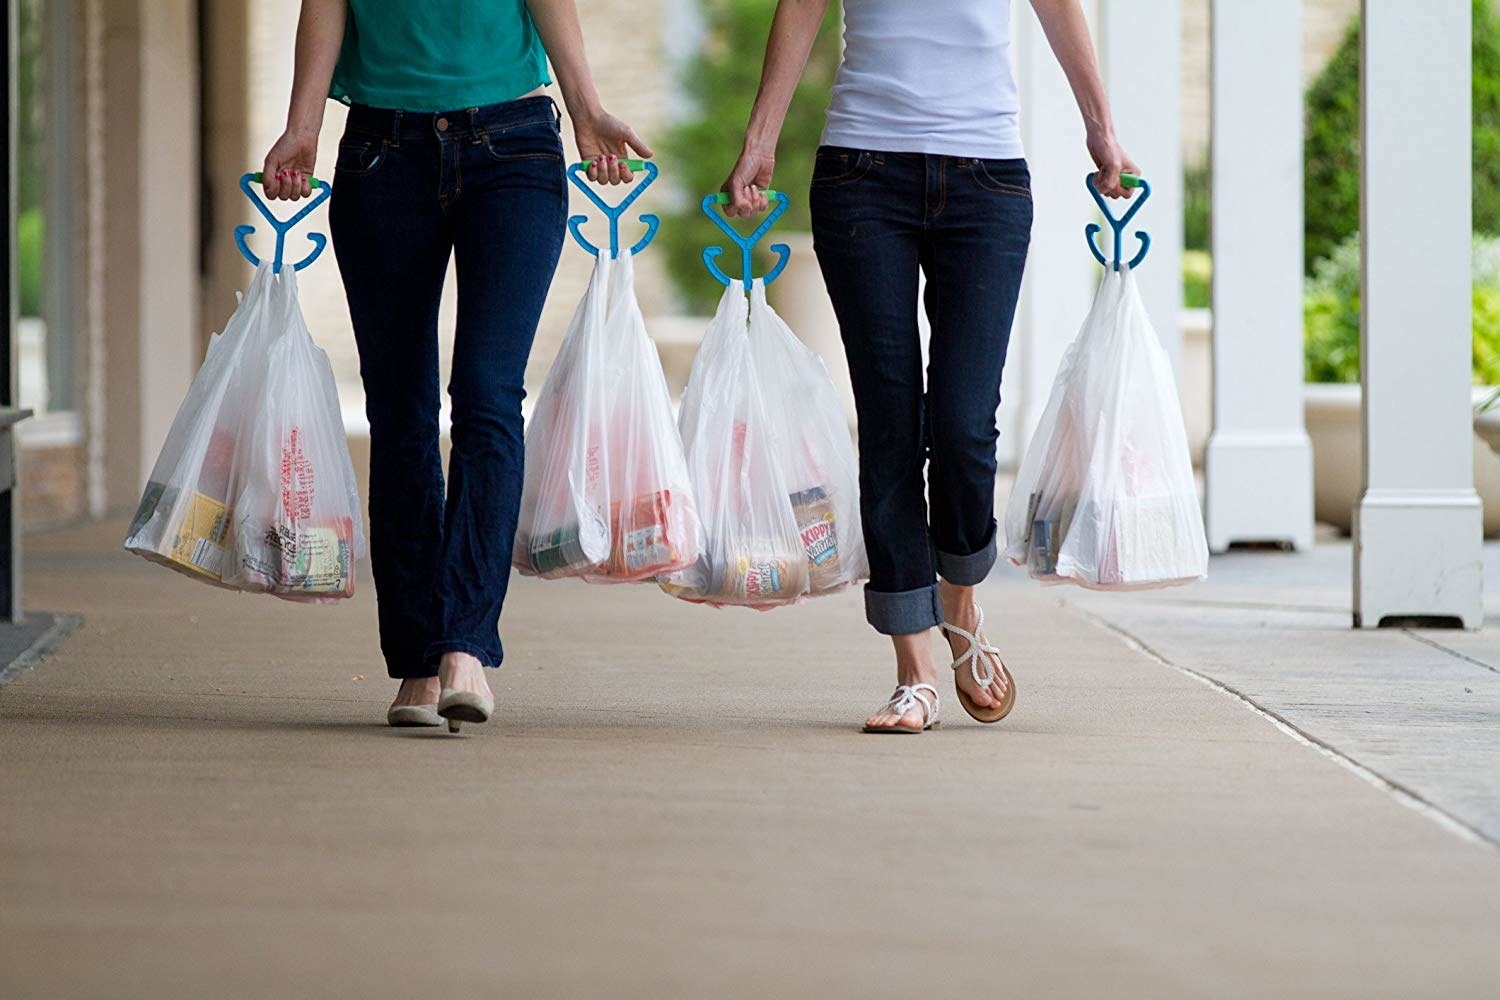 models walk with hooks that hold multiple bags of groceries